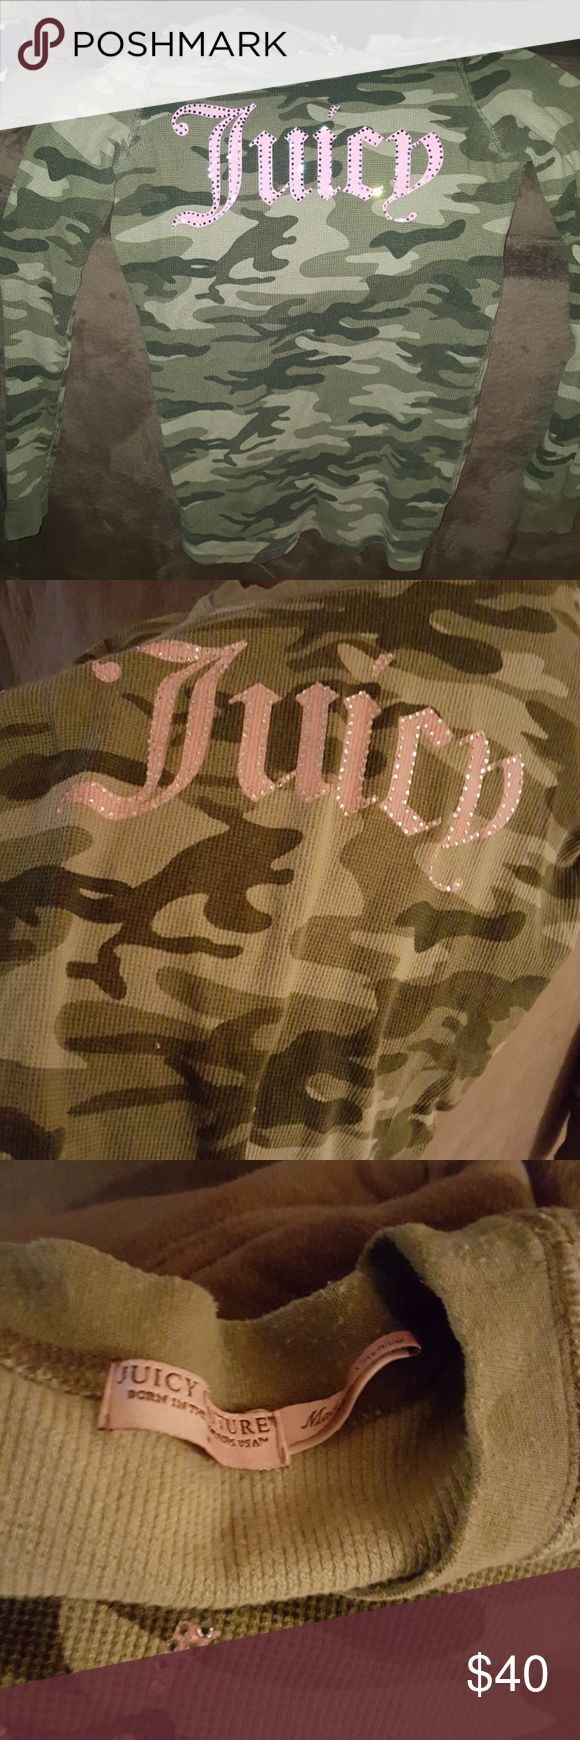 Juicy Couture  long dress camo shirt This is a like new camo Juicy Couture dress  shirt , with pink Juicy on front  this could be worn with tights, boots ,jeans,  anything. This is a very cute camo Juicy Couture Shirt,👠👖👗💍👒👚 Juicy Couture Tops Tunics